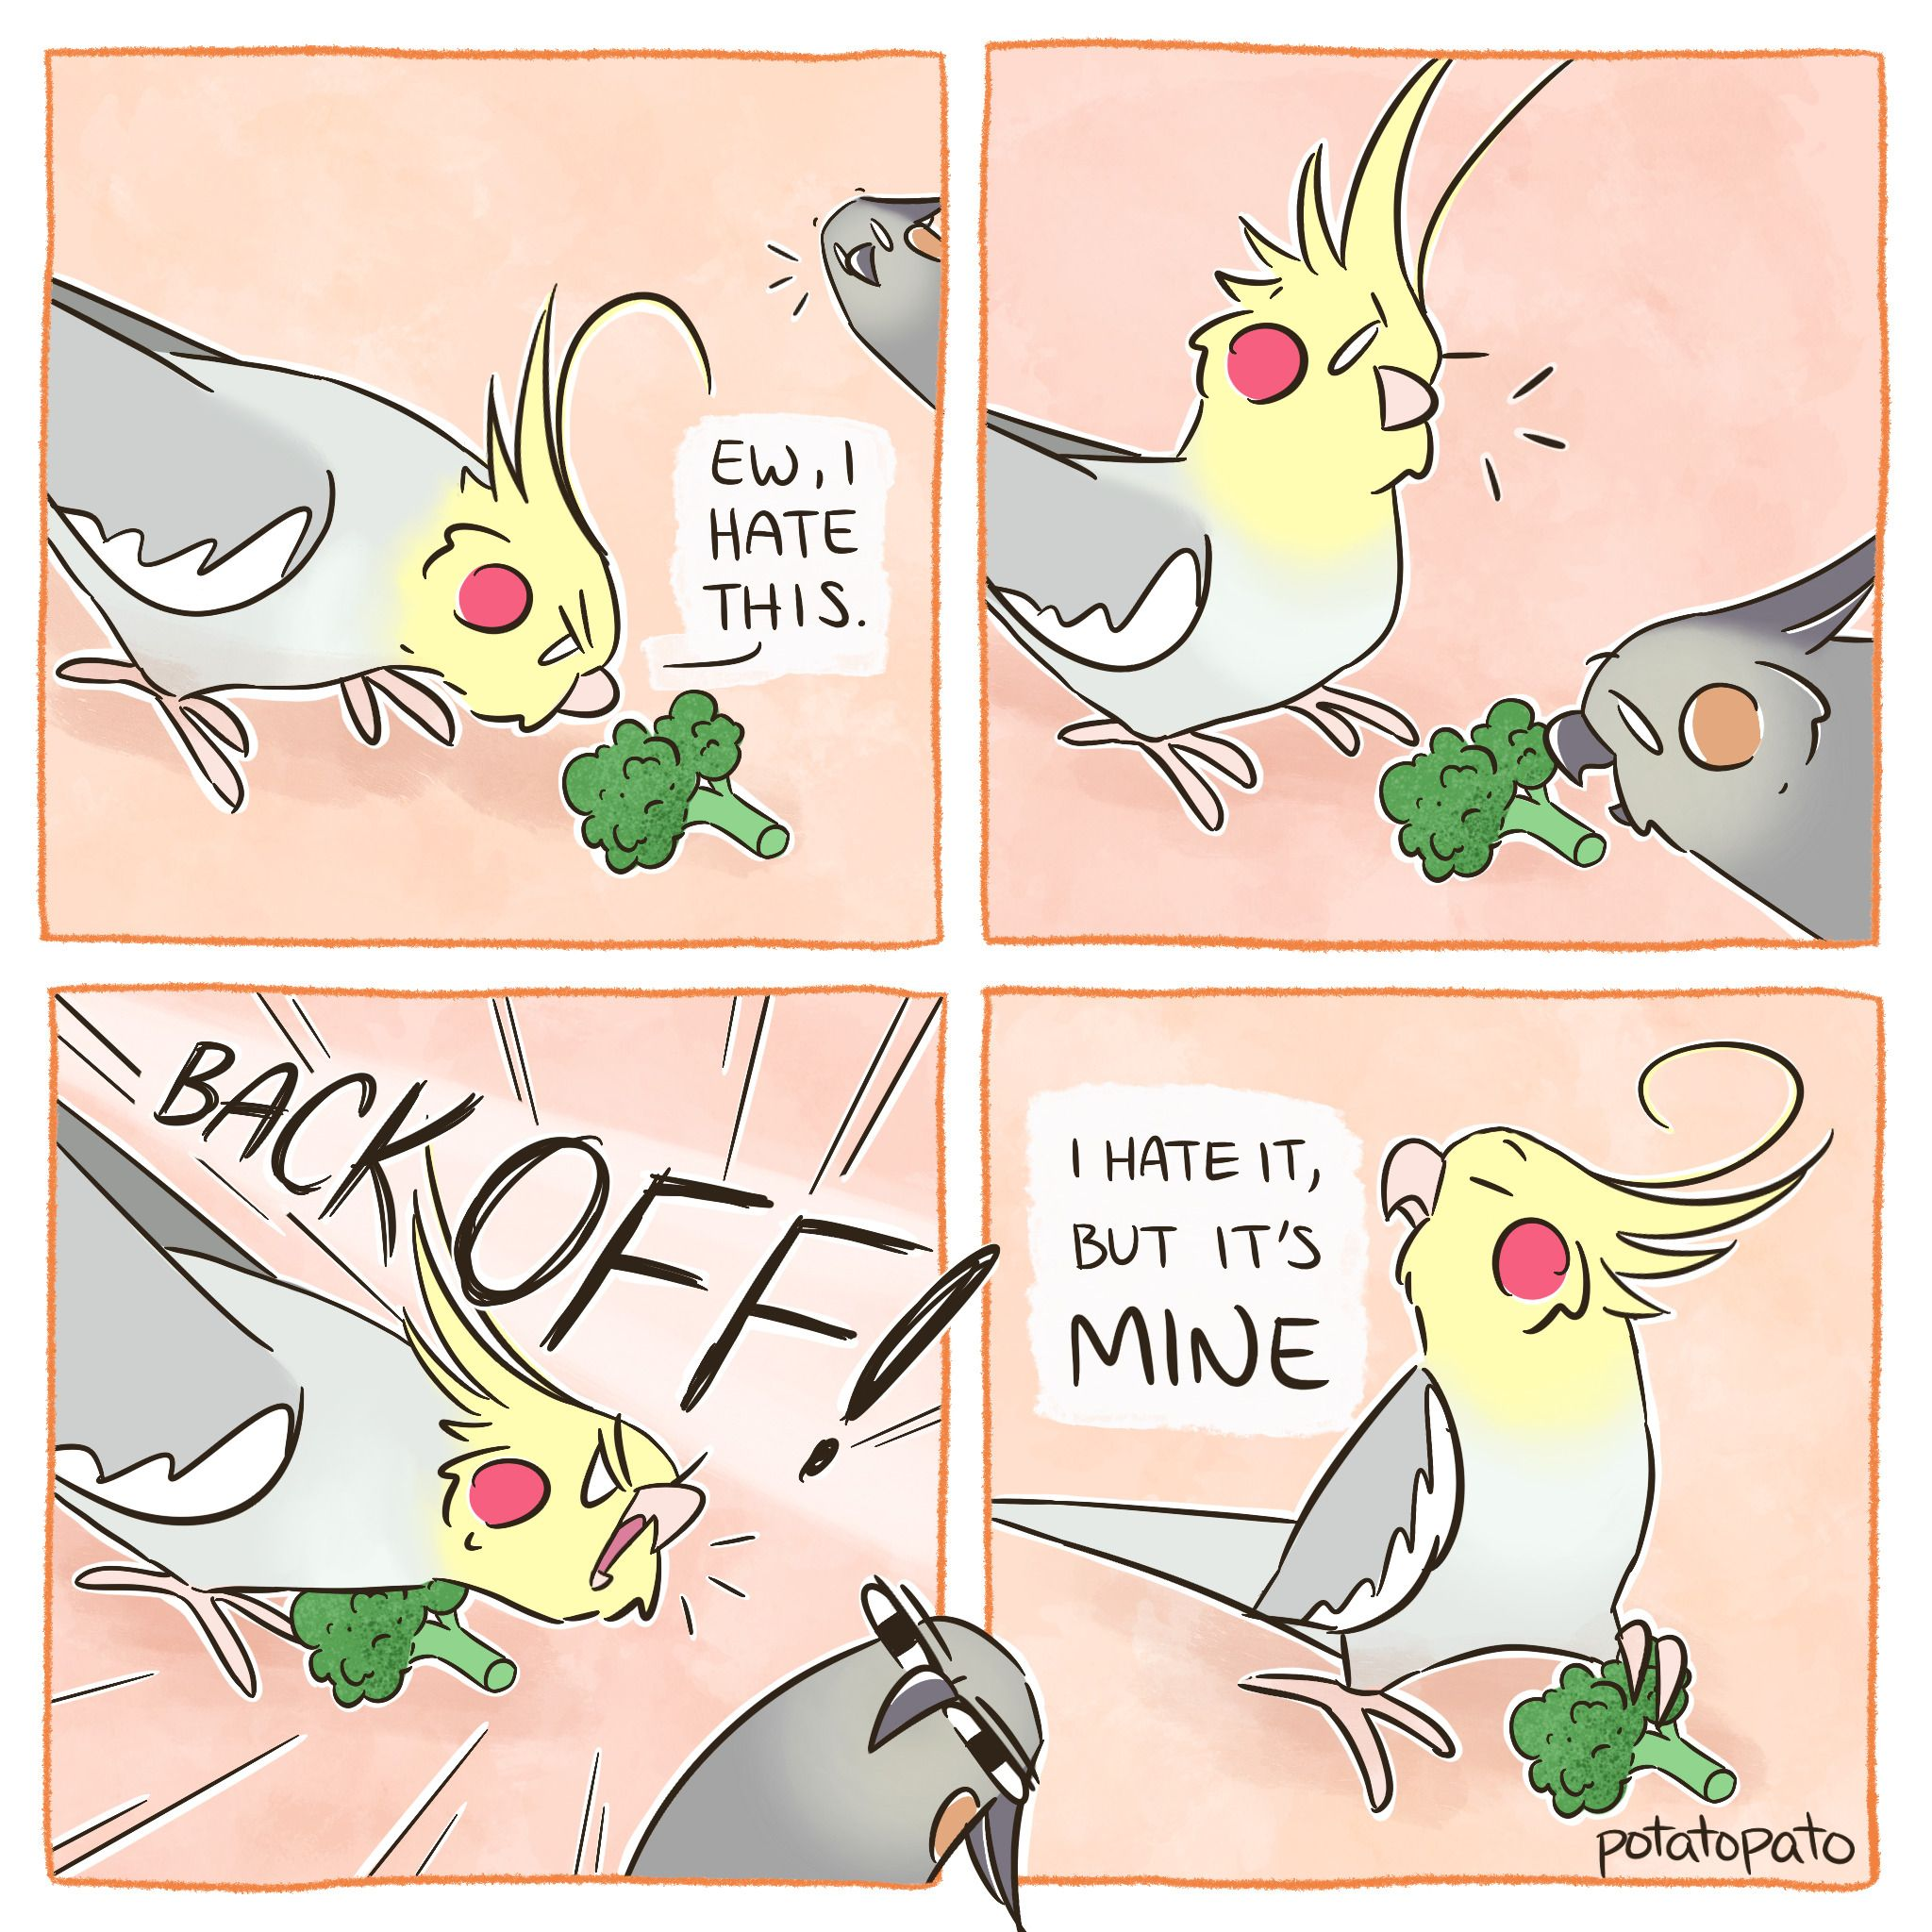 to my tiel comics ) Please don't repost without